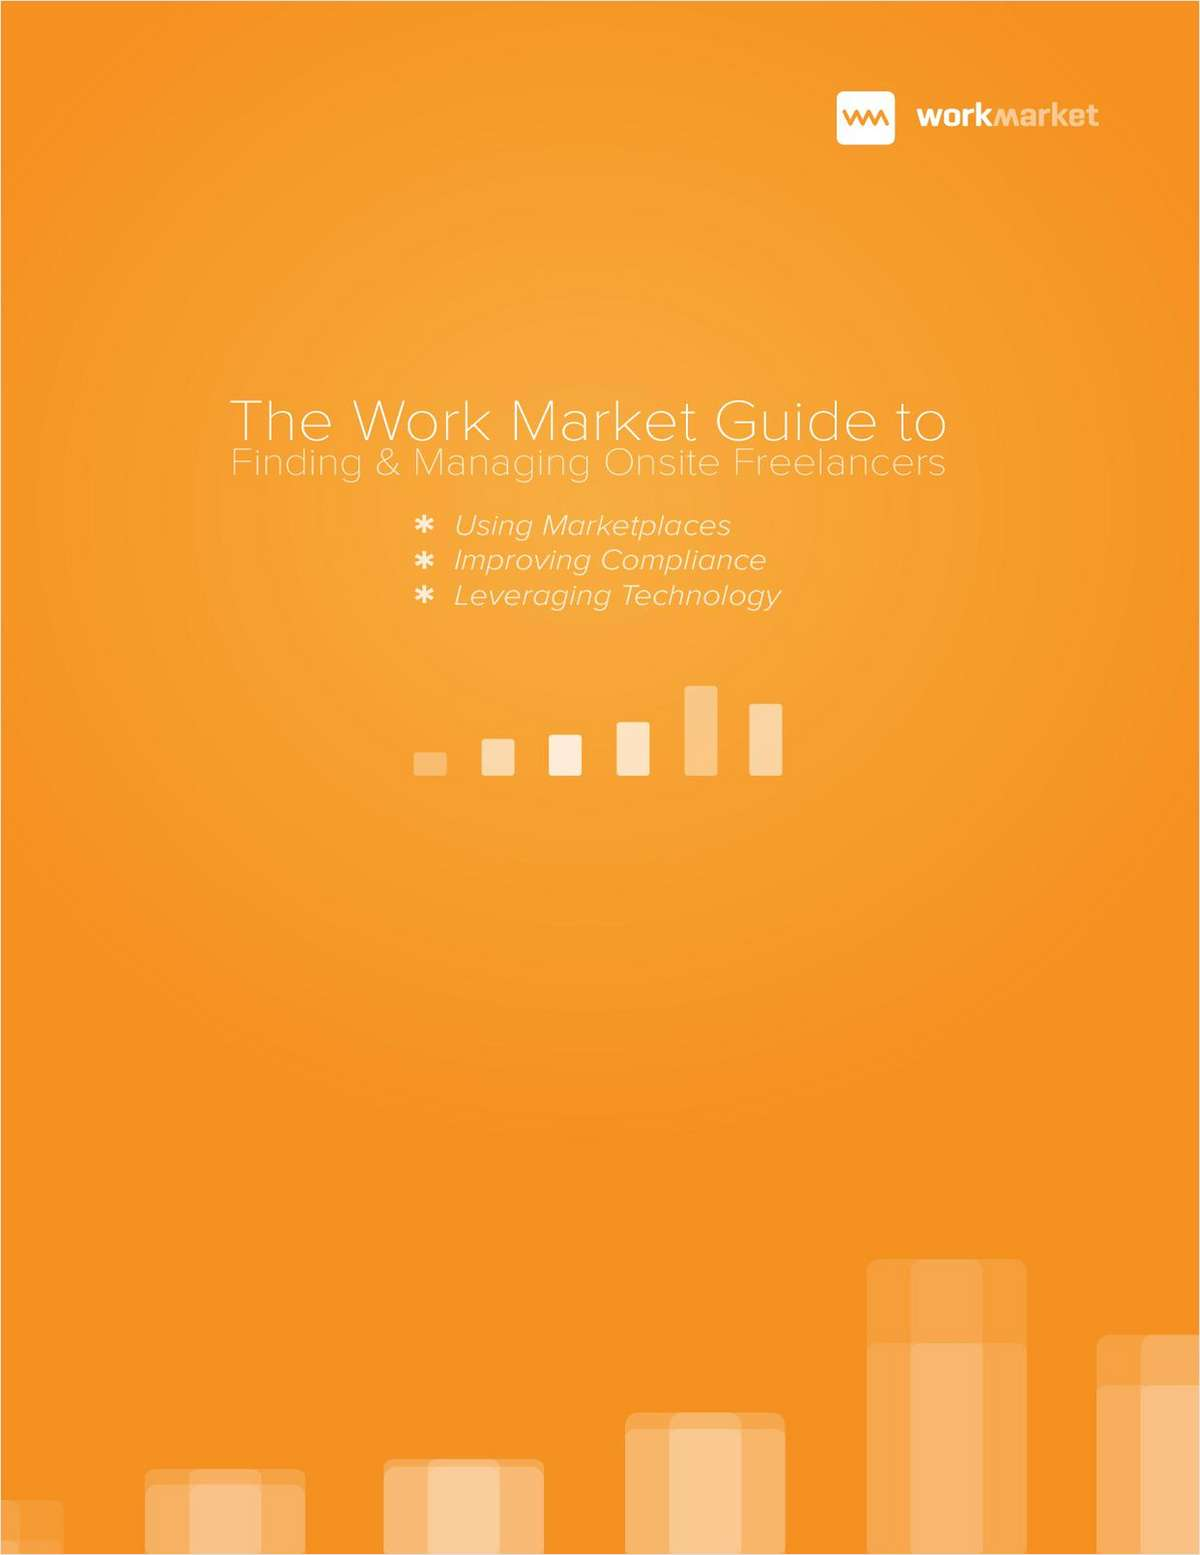 The Work Market Guide to Finding & Managing Freelancers